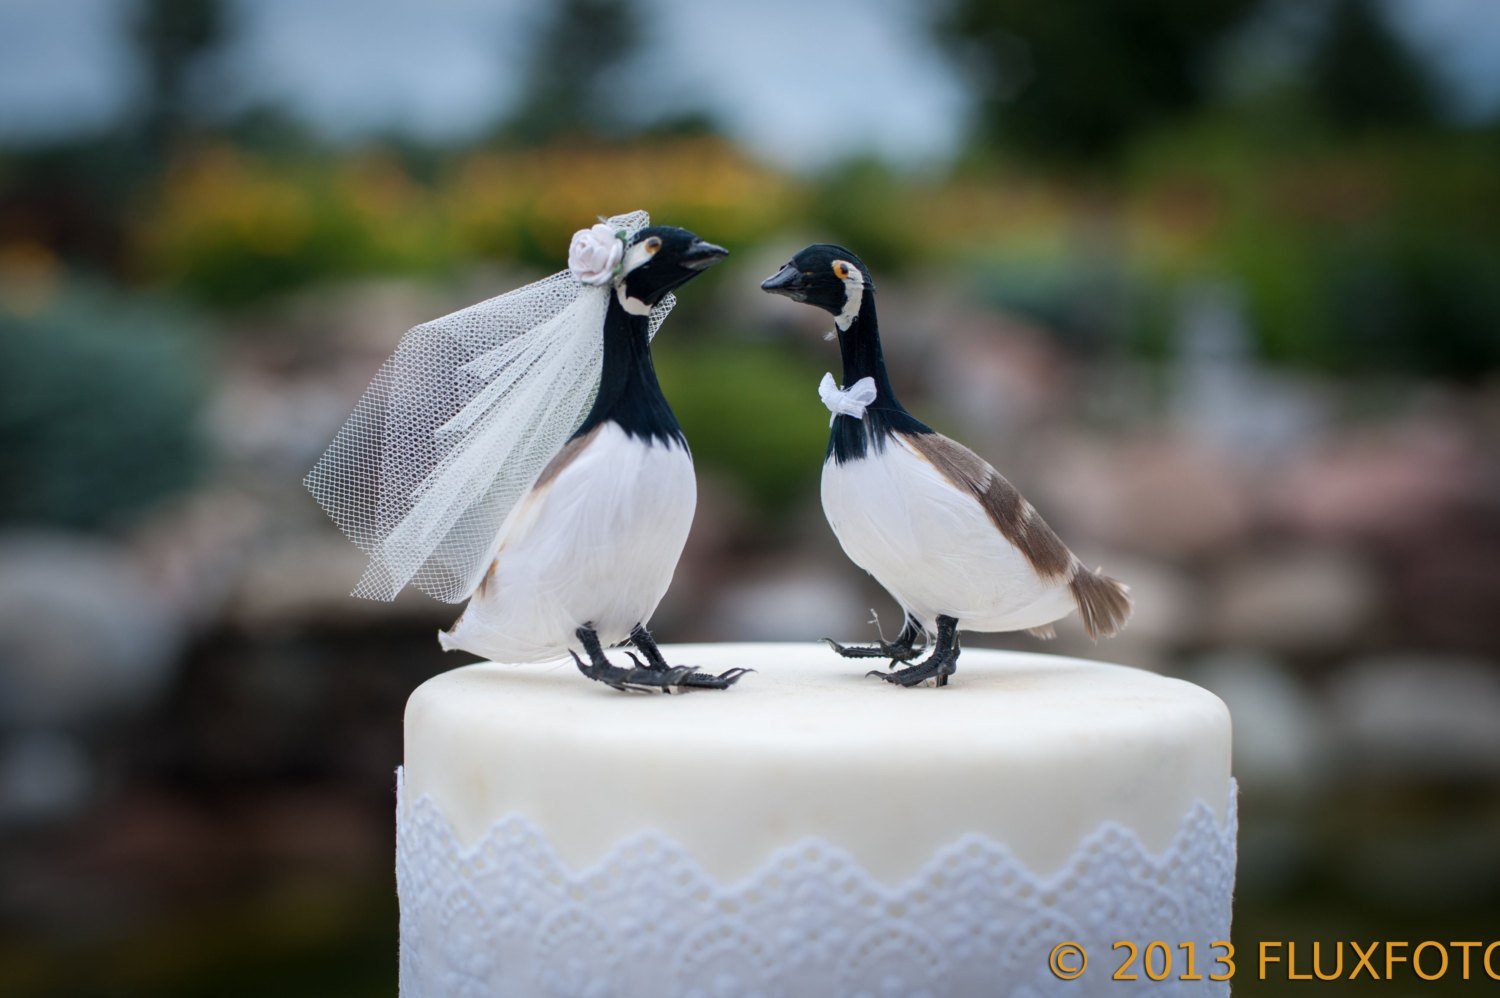 Canada Goose Cake Topper: ''Bride and Groom'' Love Birds Wedding Topper in Black, White and Brown